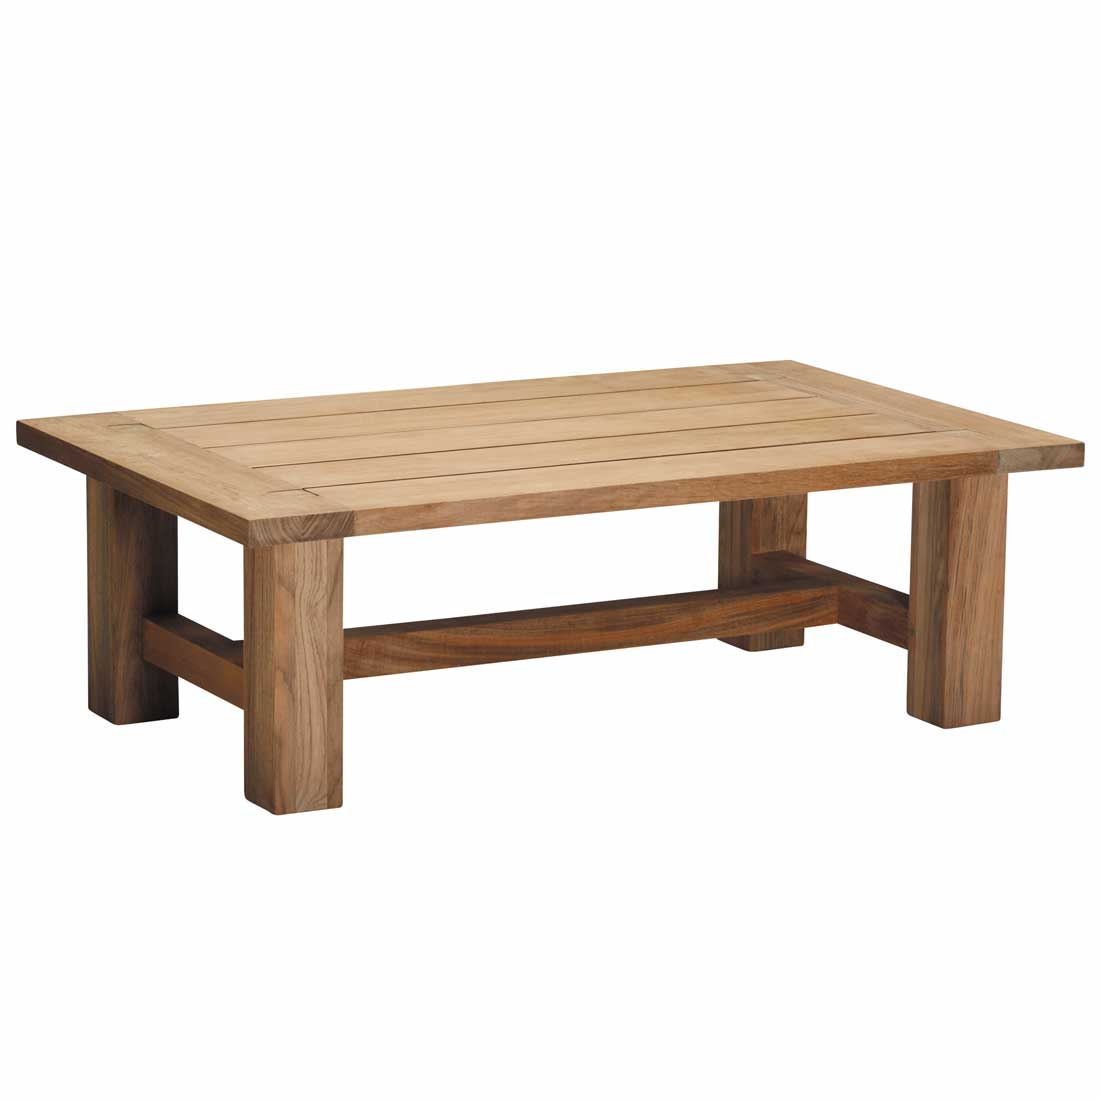 Croquet Teak Coffee Table on Home Bar Counters For Sale